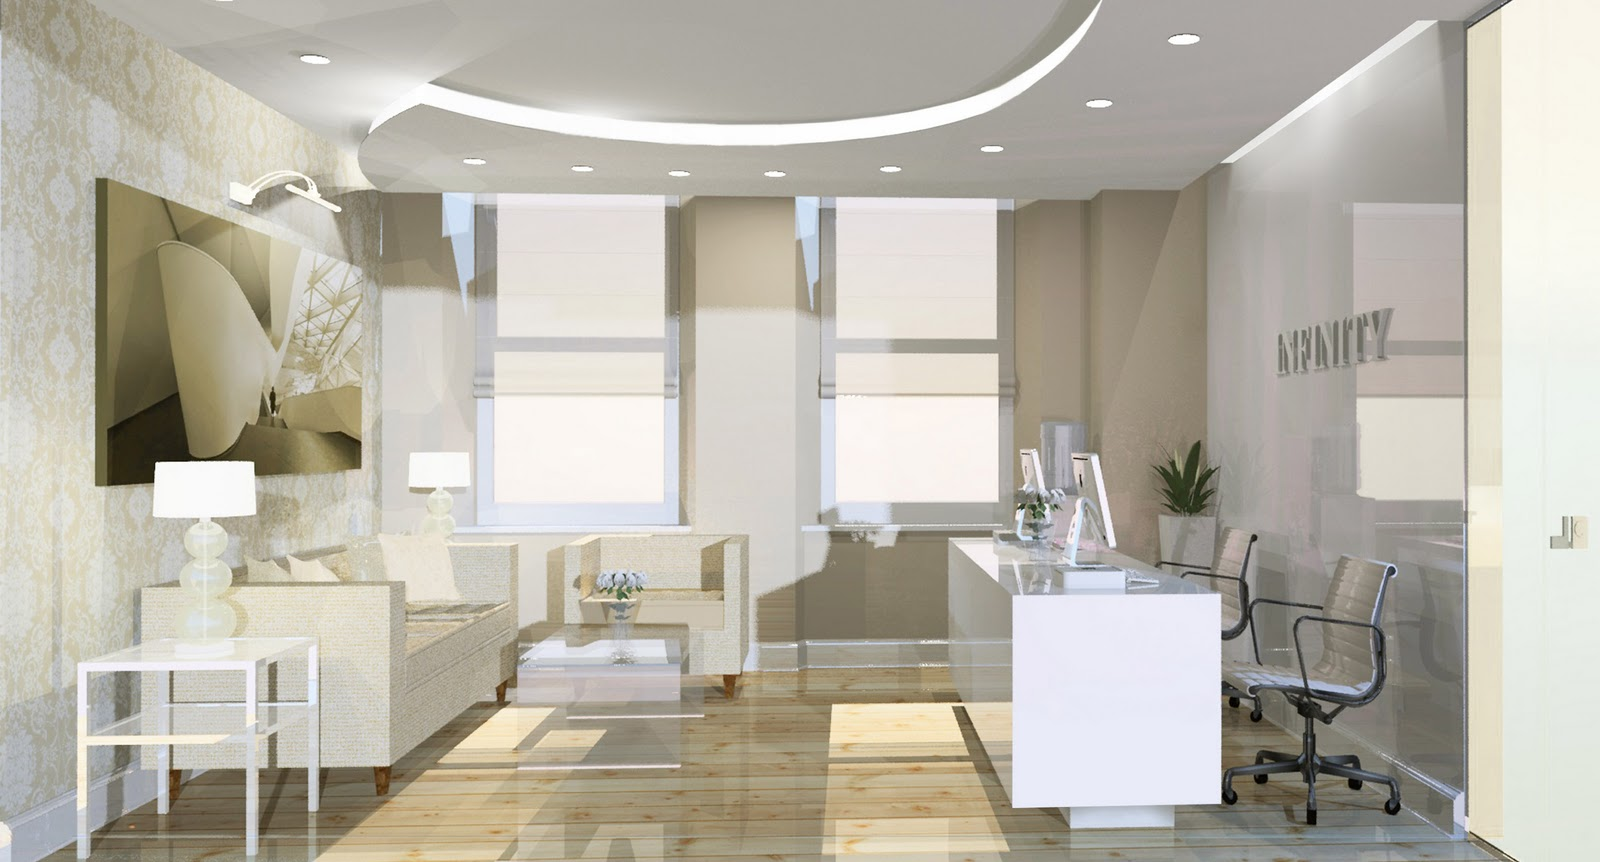 Eleni soussoni design for Office area design